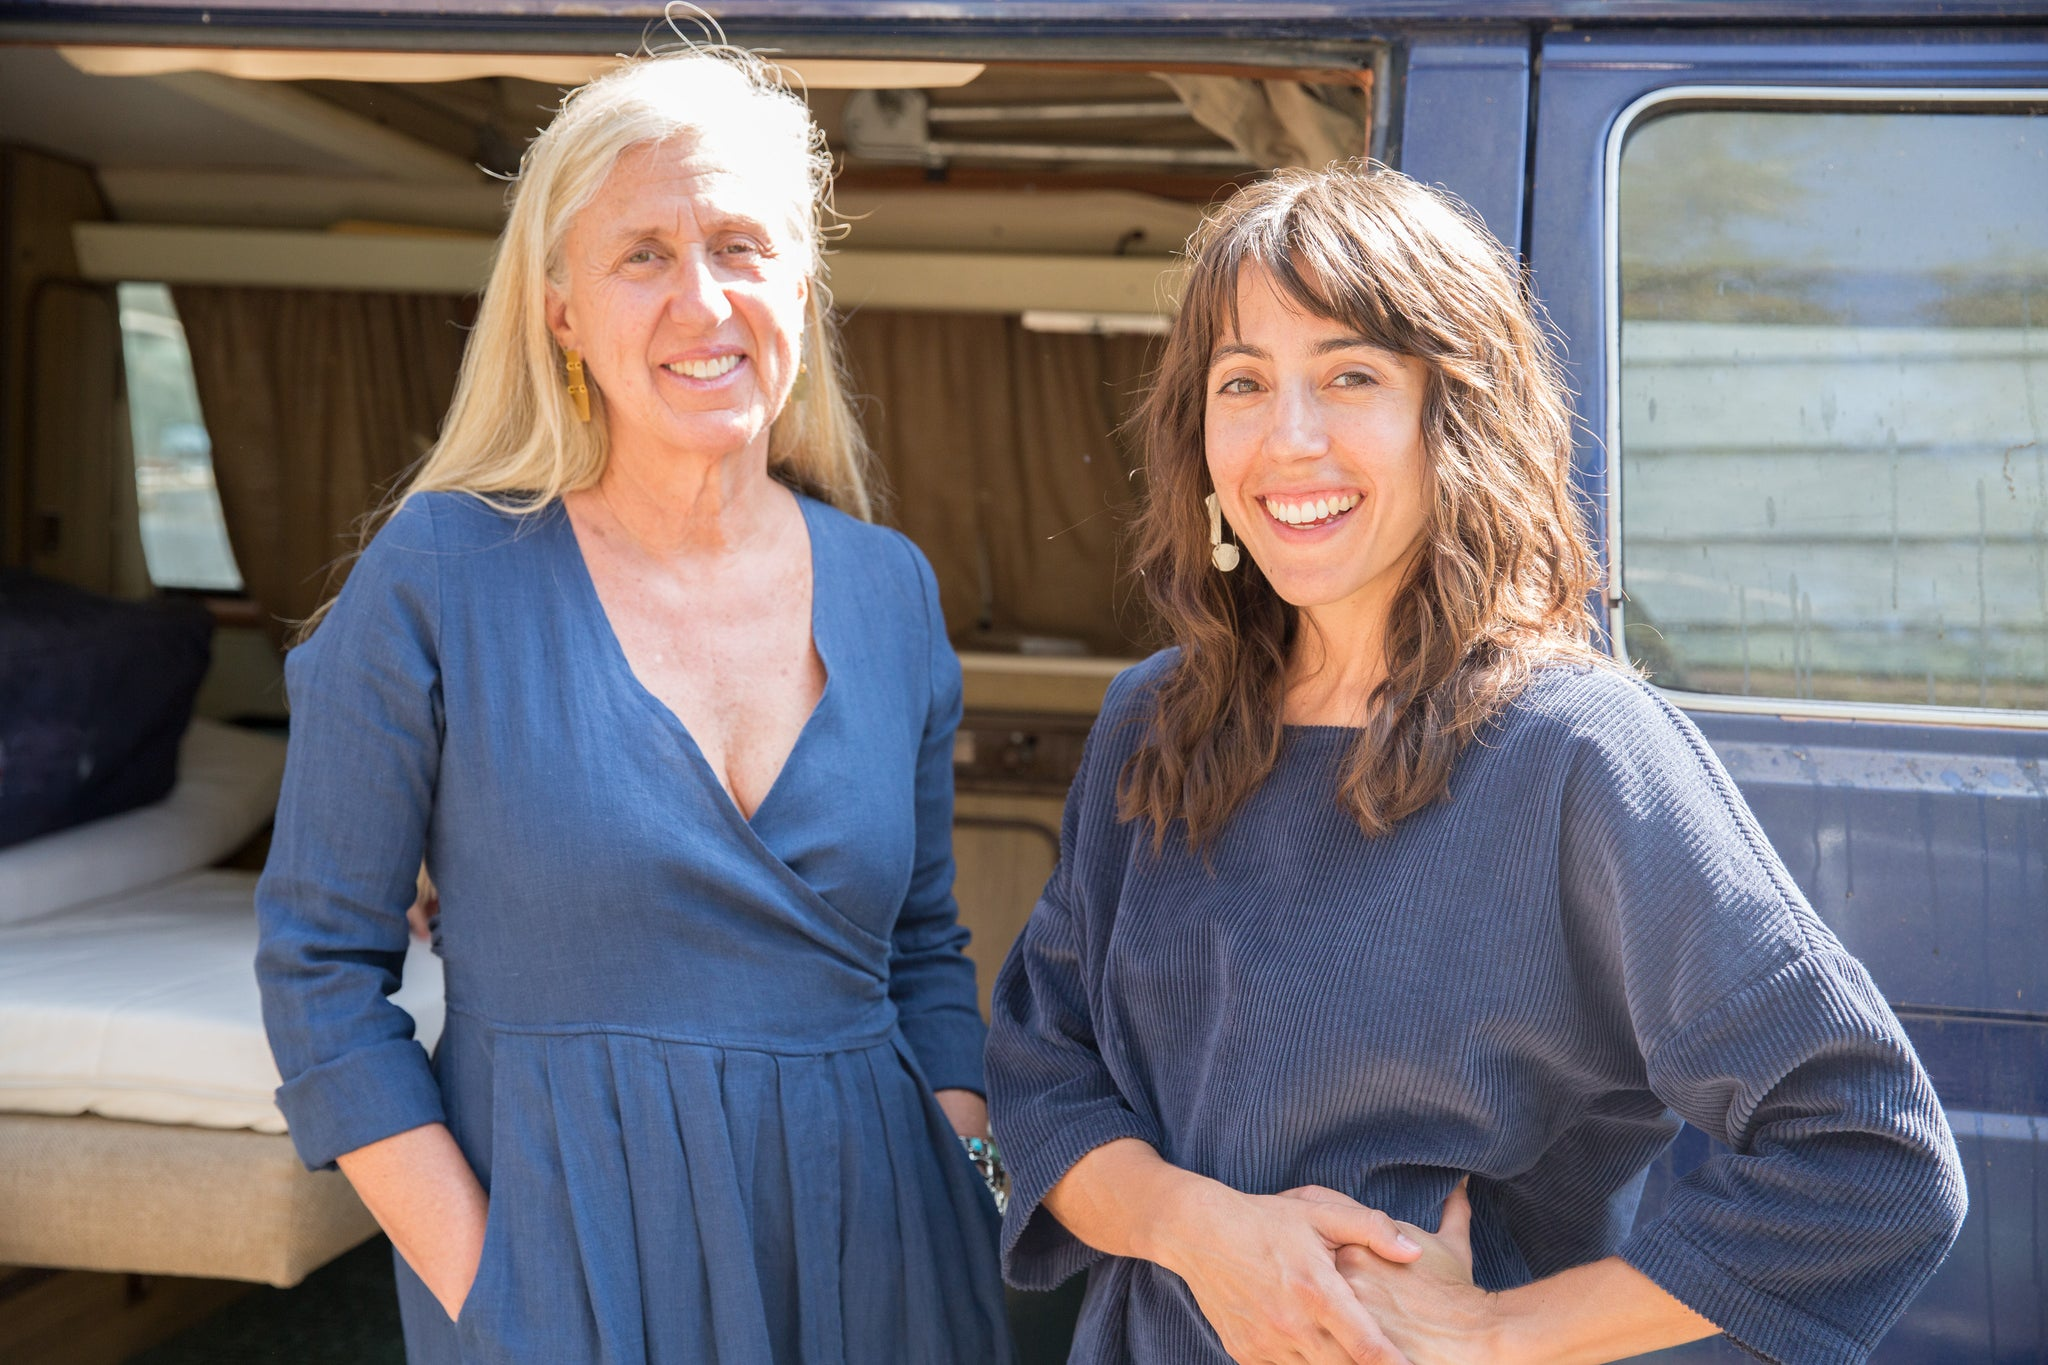 Dotter owners, Susanne McLean and Annika Huston, in front of blue van